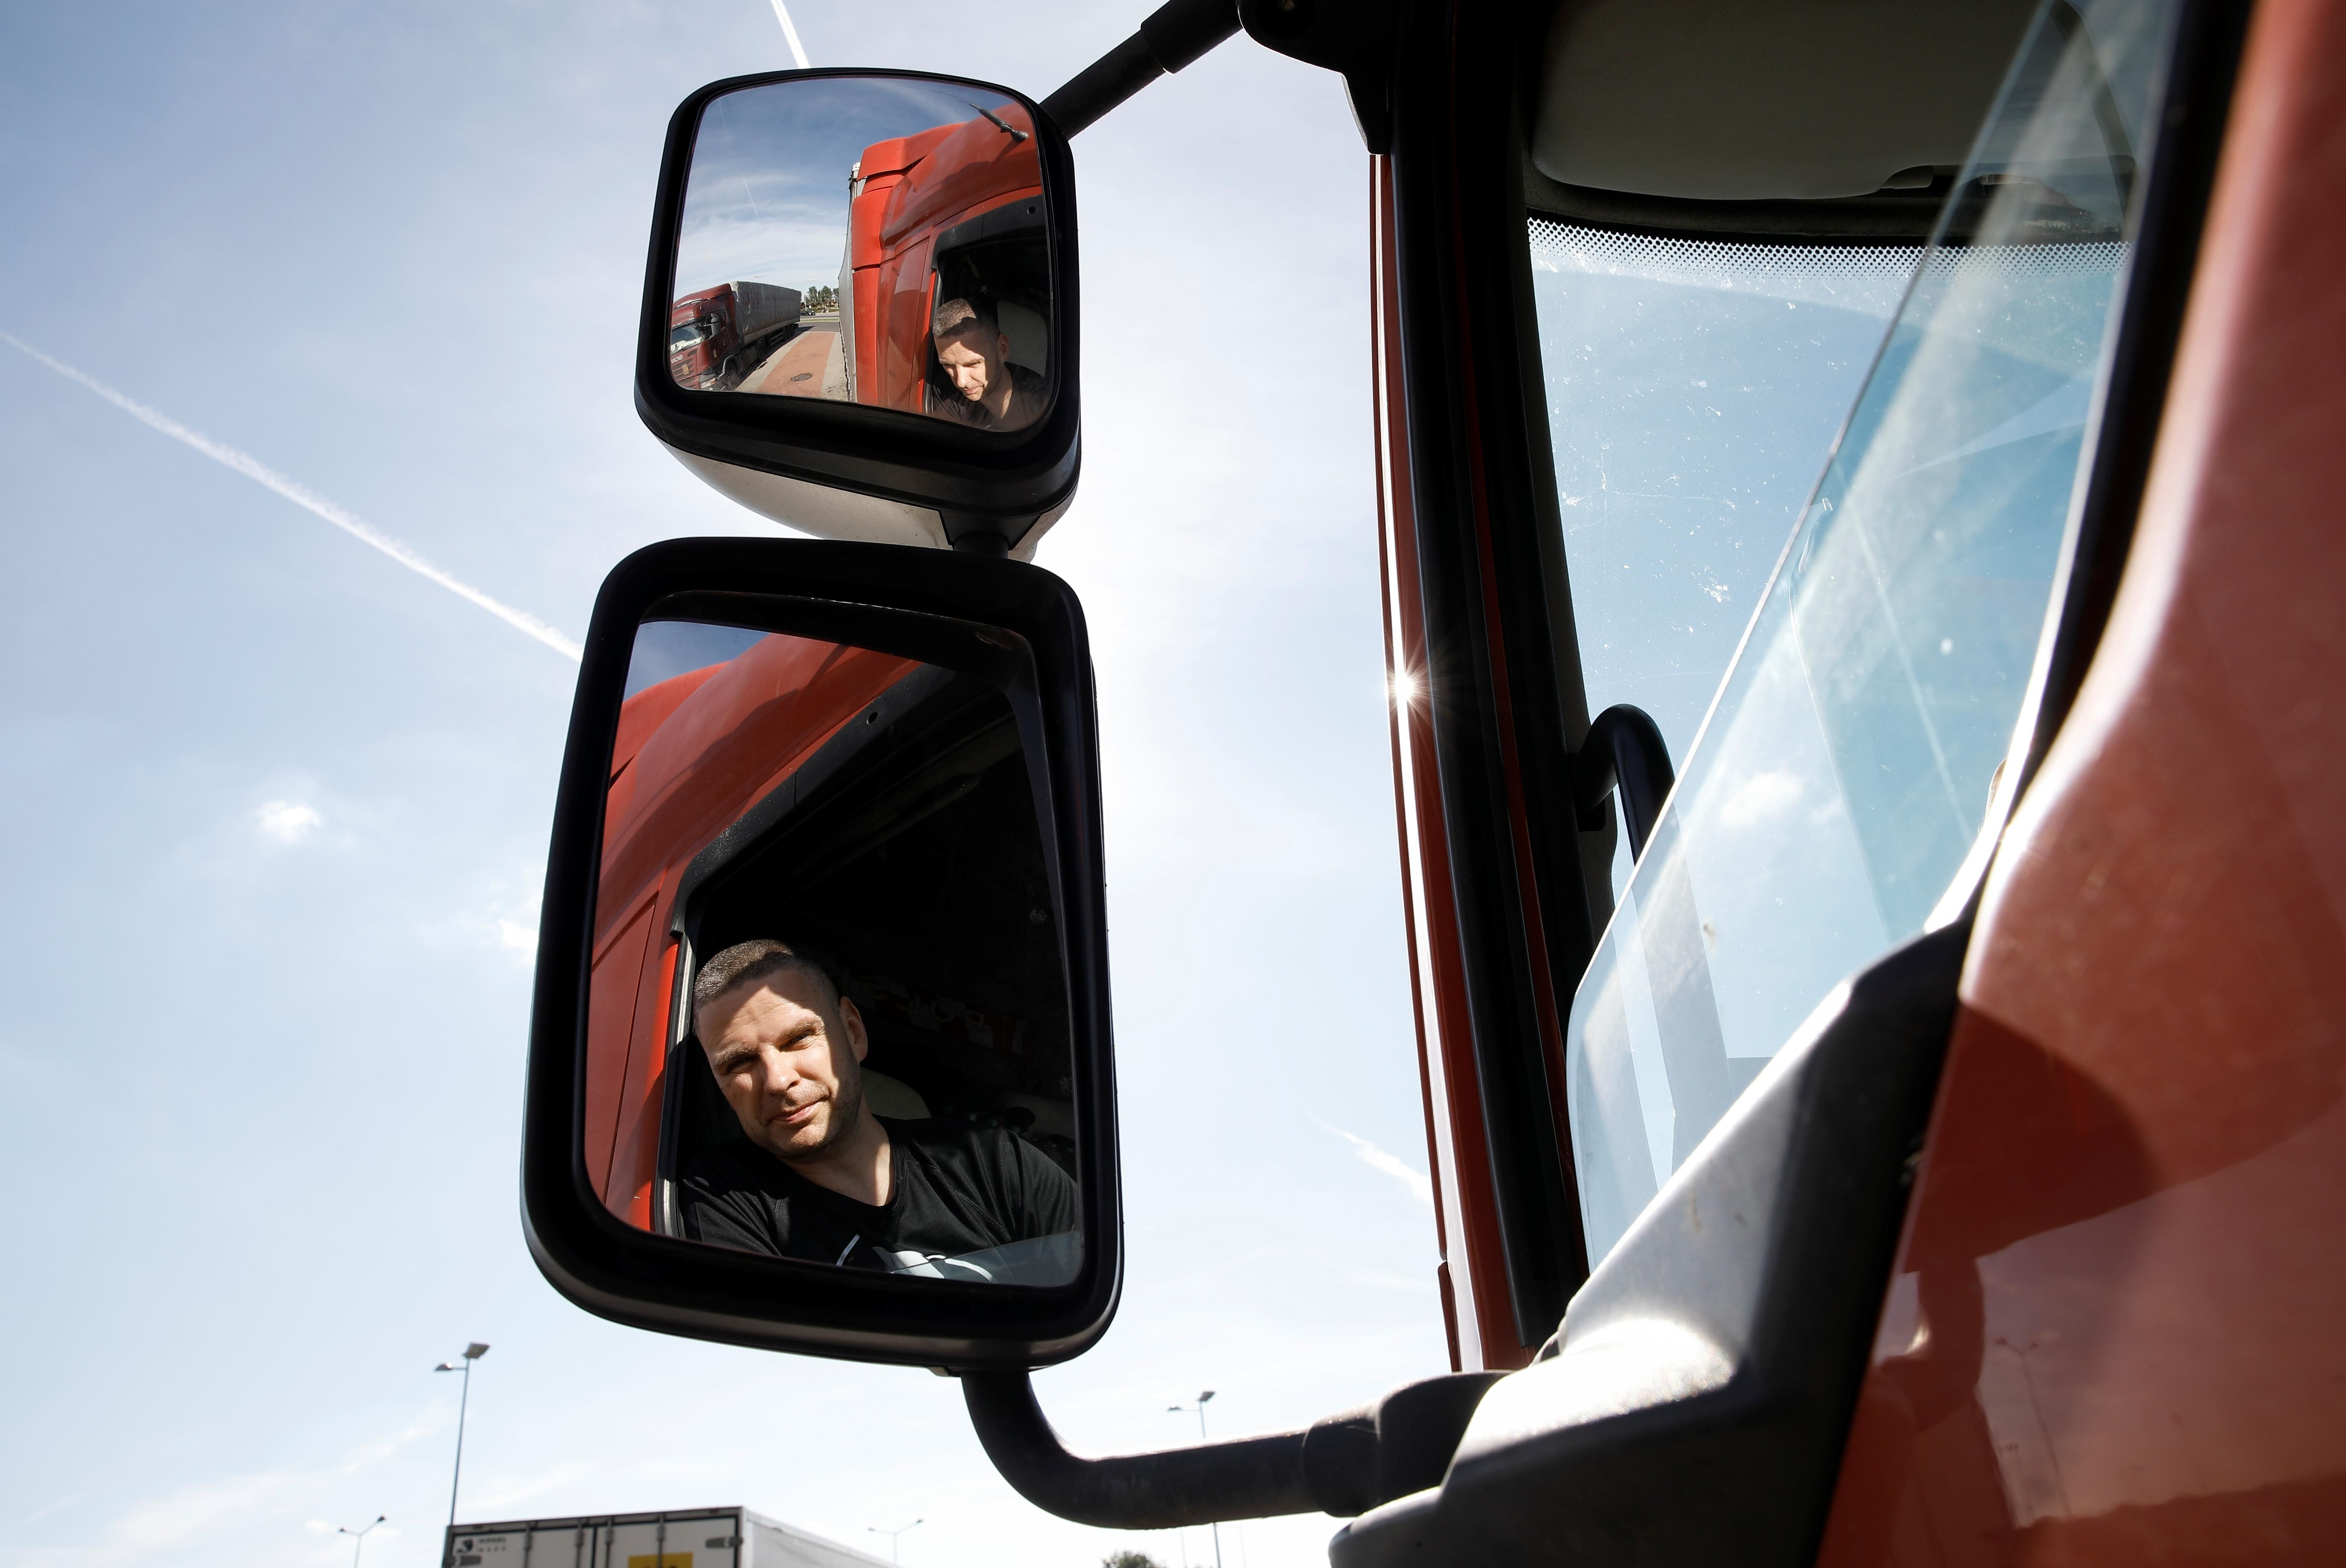 What We're Watching: Europe's trucker shortage, Mapuche emergency in Chile, Japan's military plans